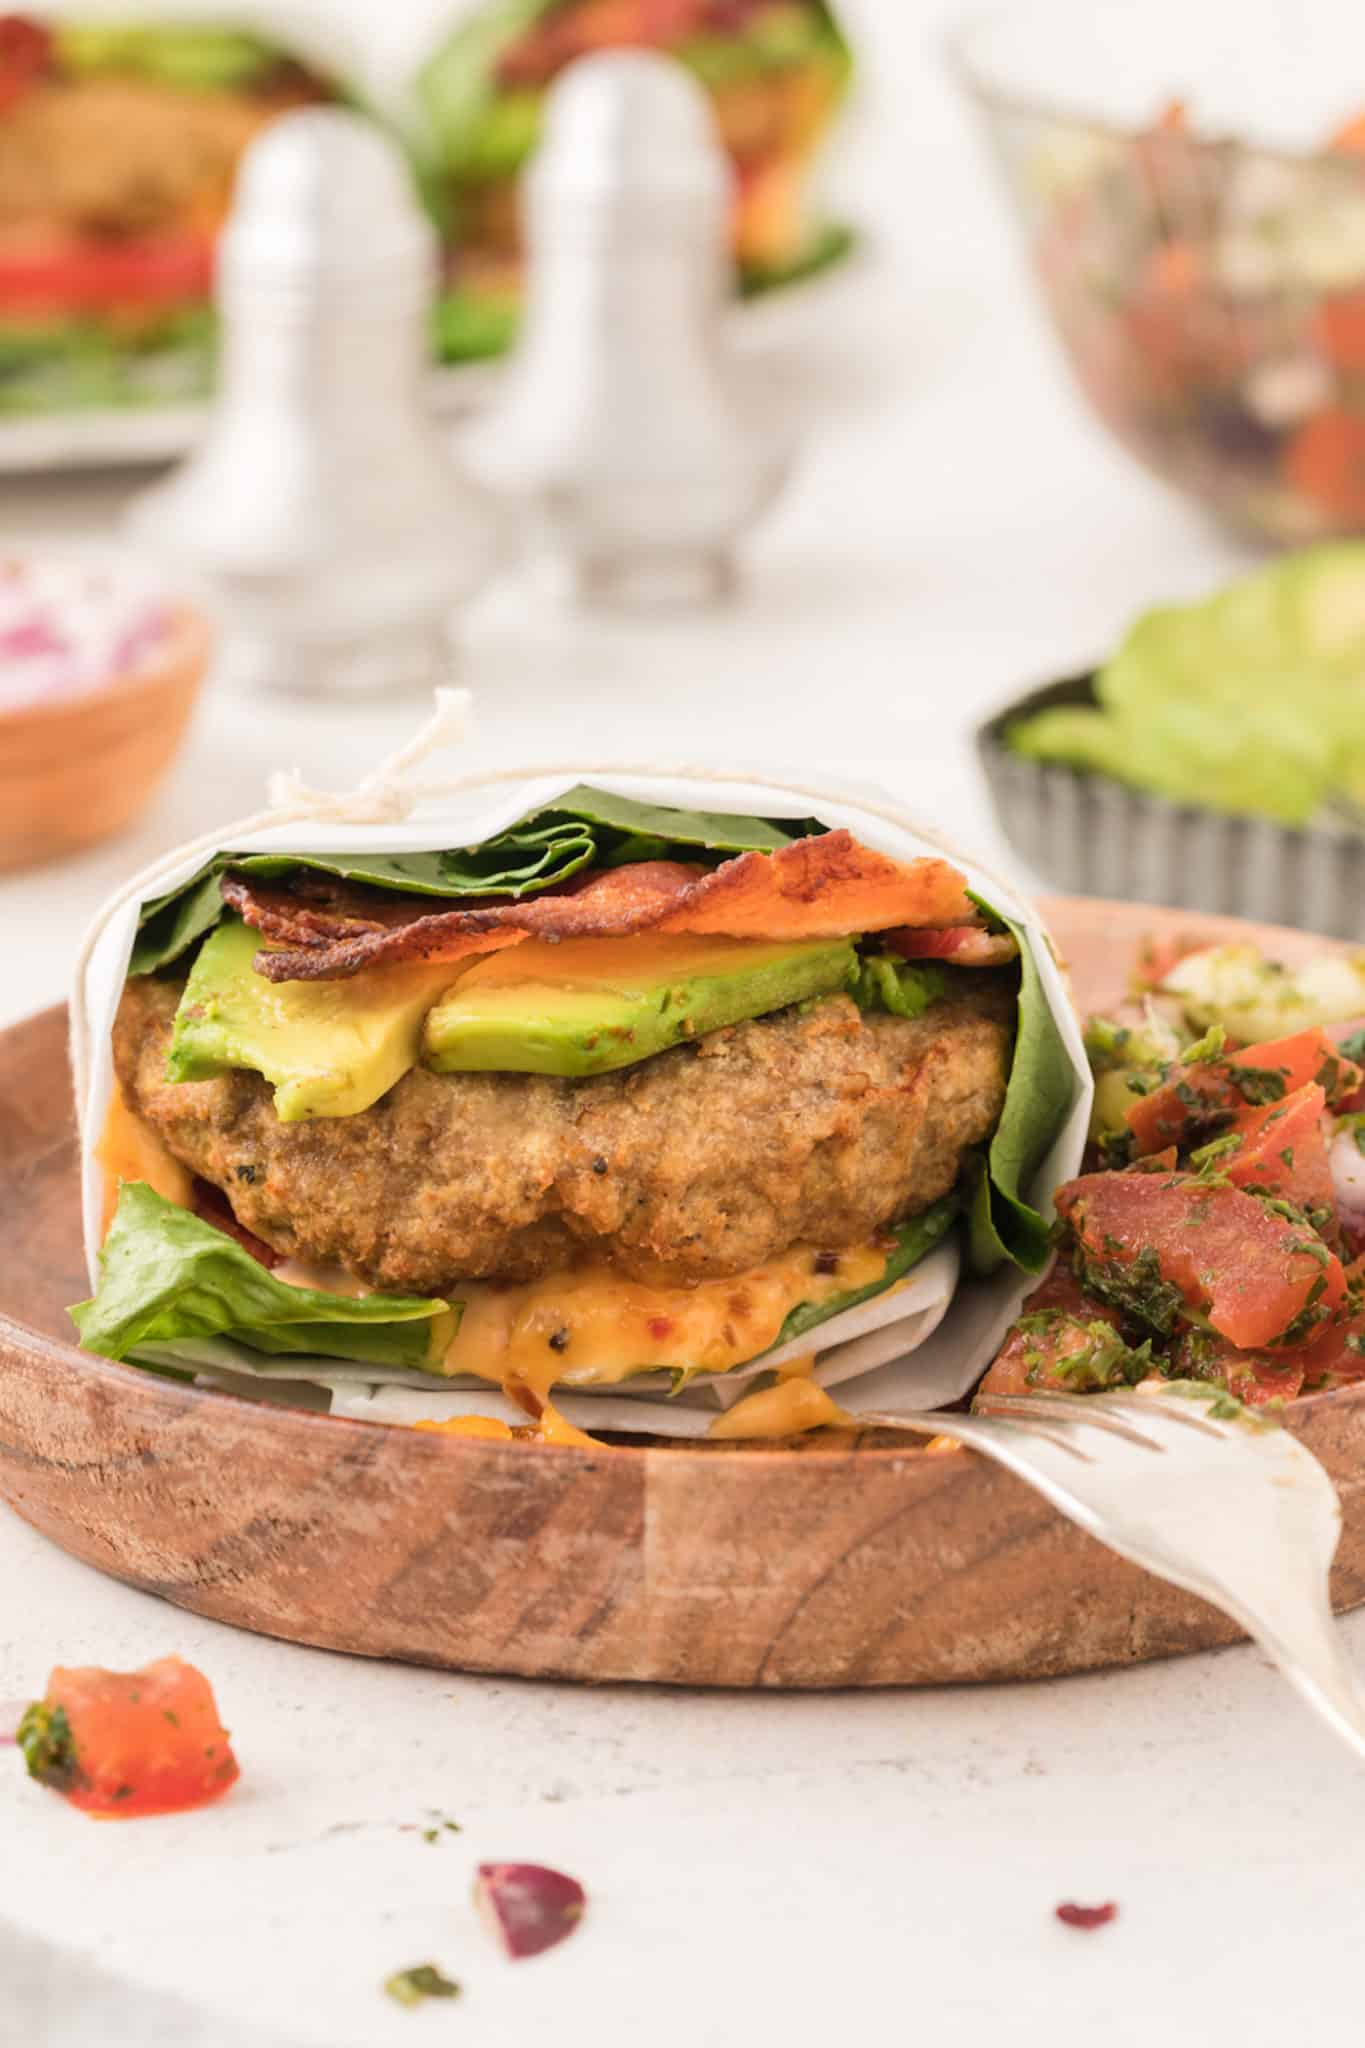 A lettuce wrapped turkey burger